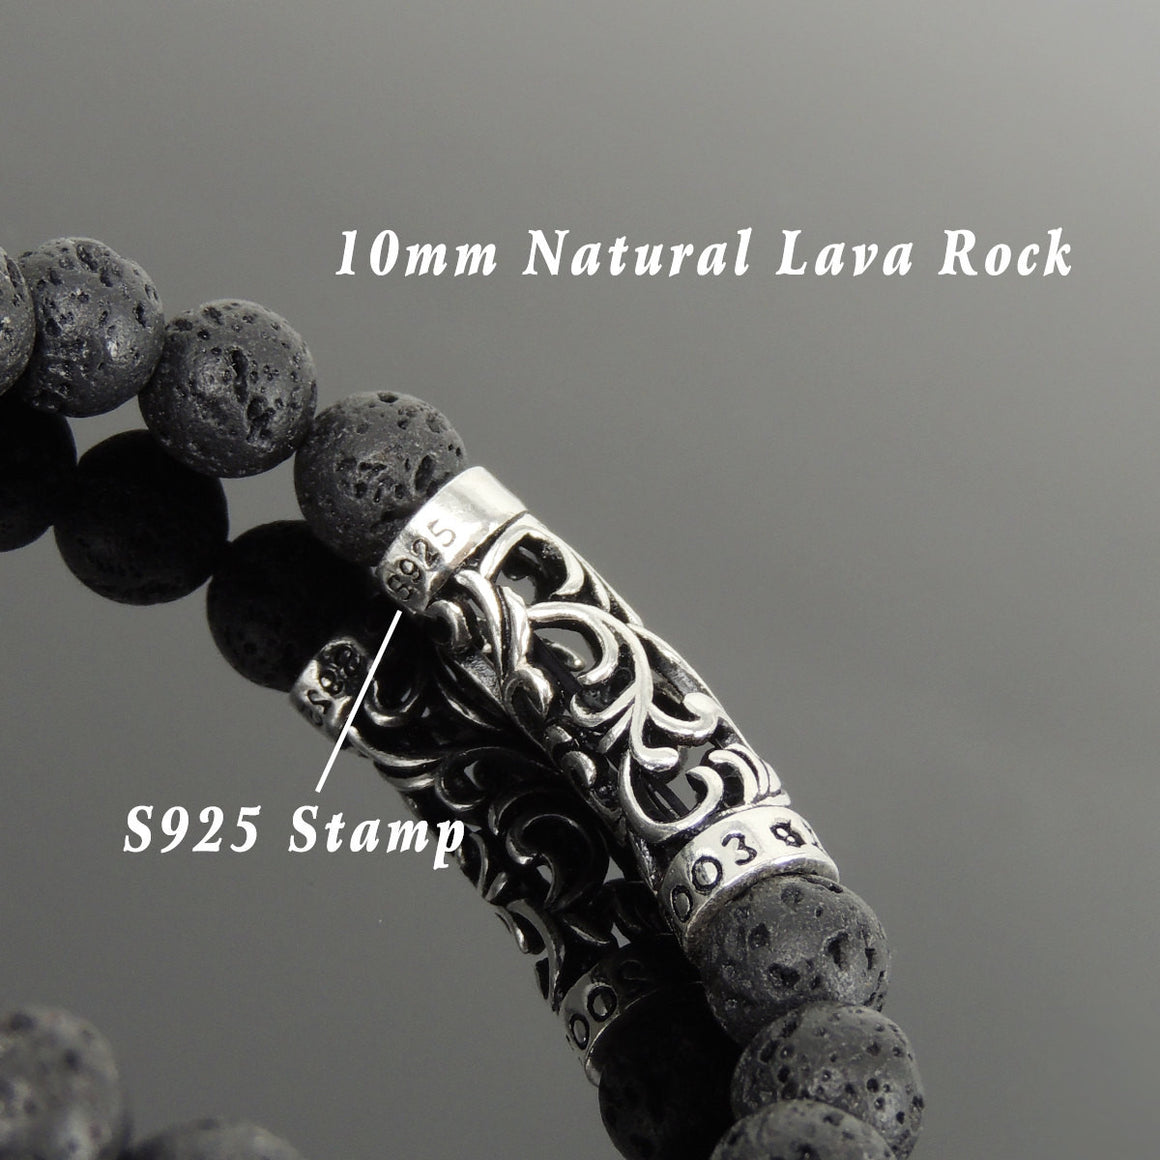 10mm Lava Rock Healing Stone Bracelet with S925 Sterling Silver Celtic Charm - Handmade by Gem & Silver BR945